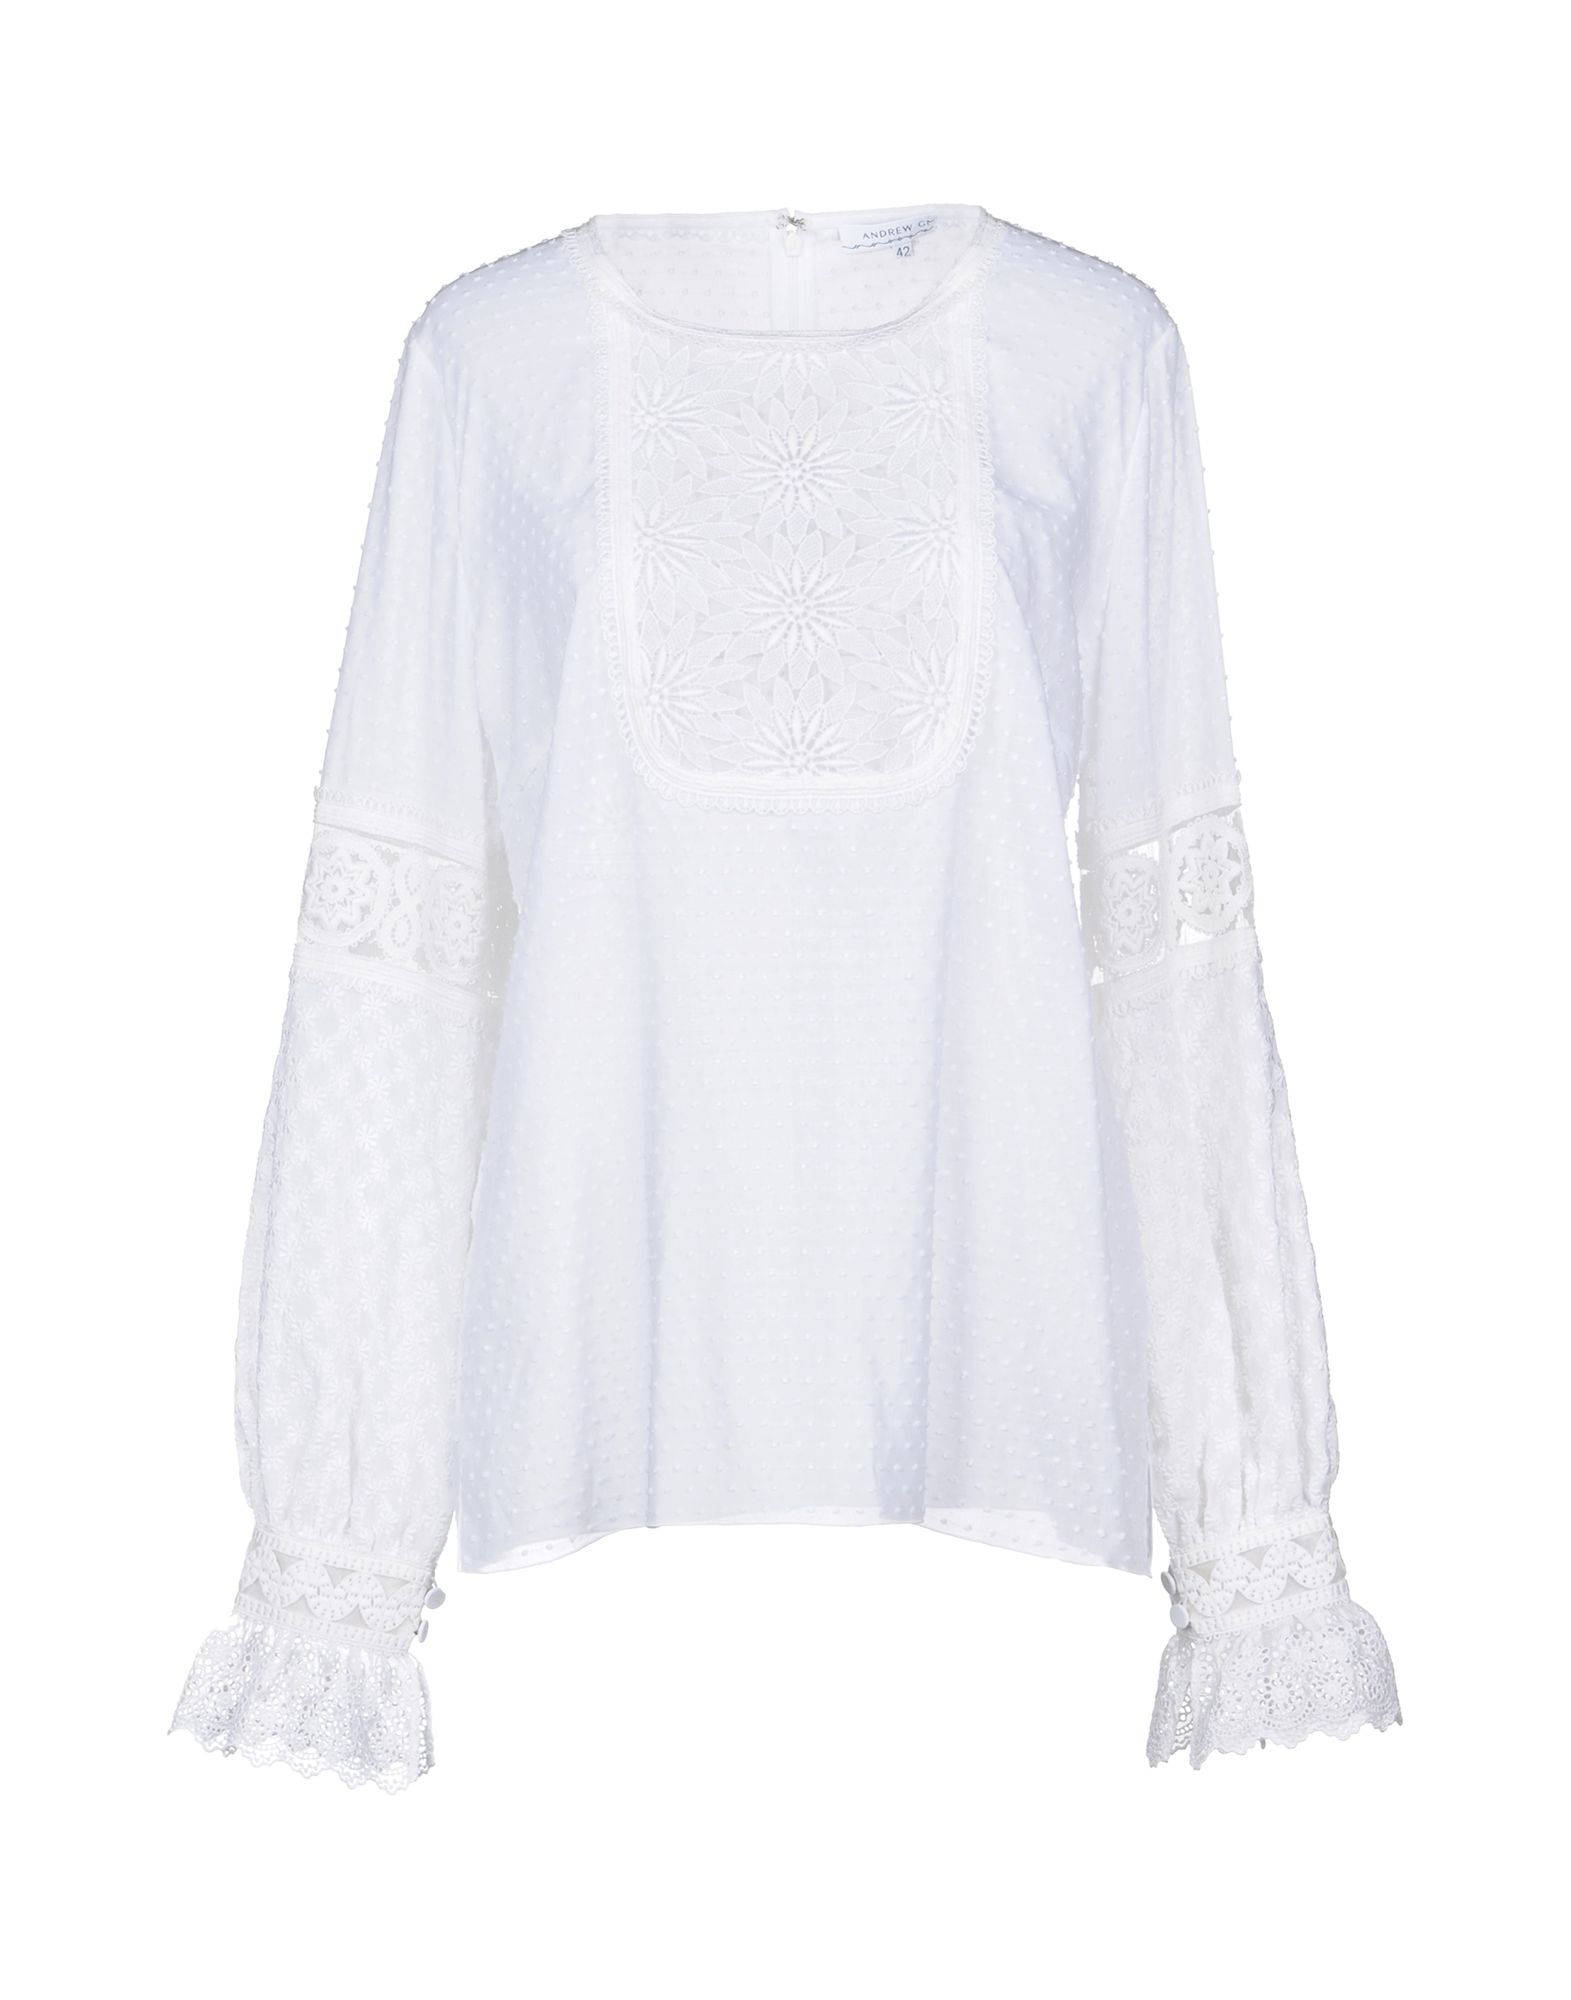 ANDREW GN Blouse in White